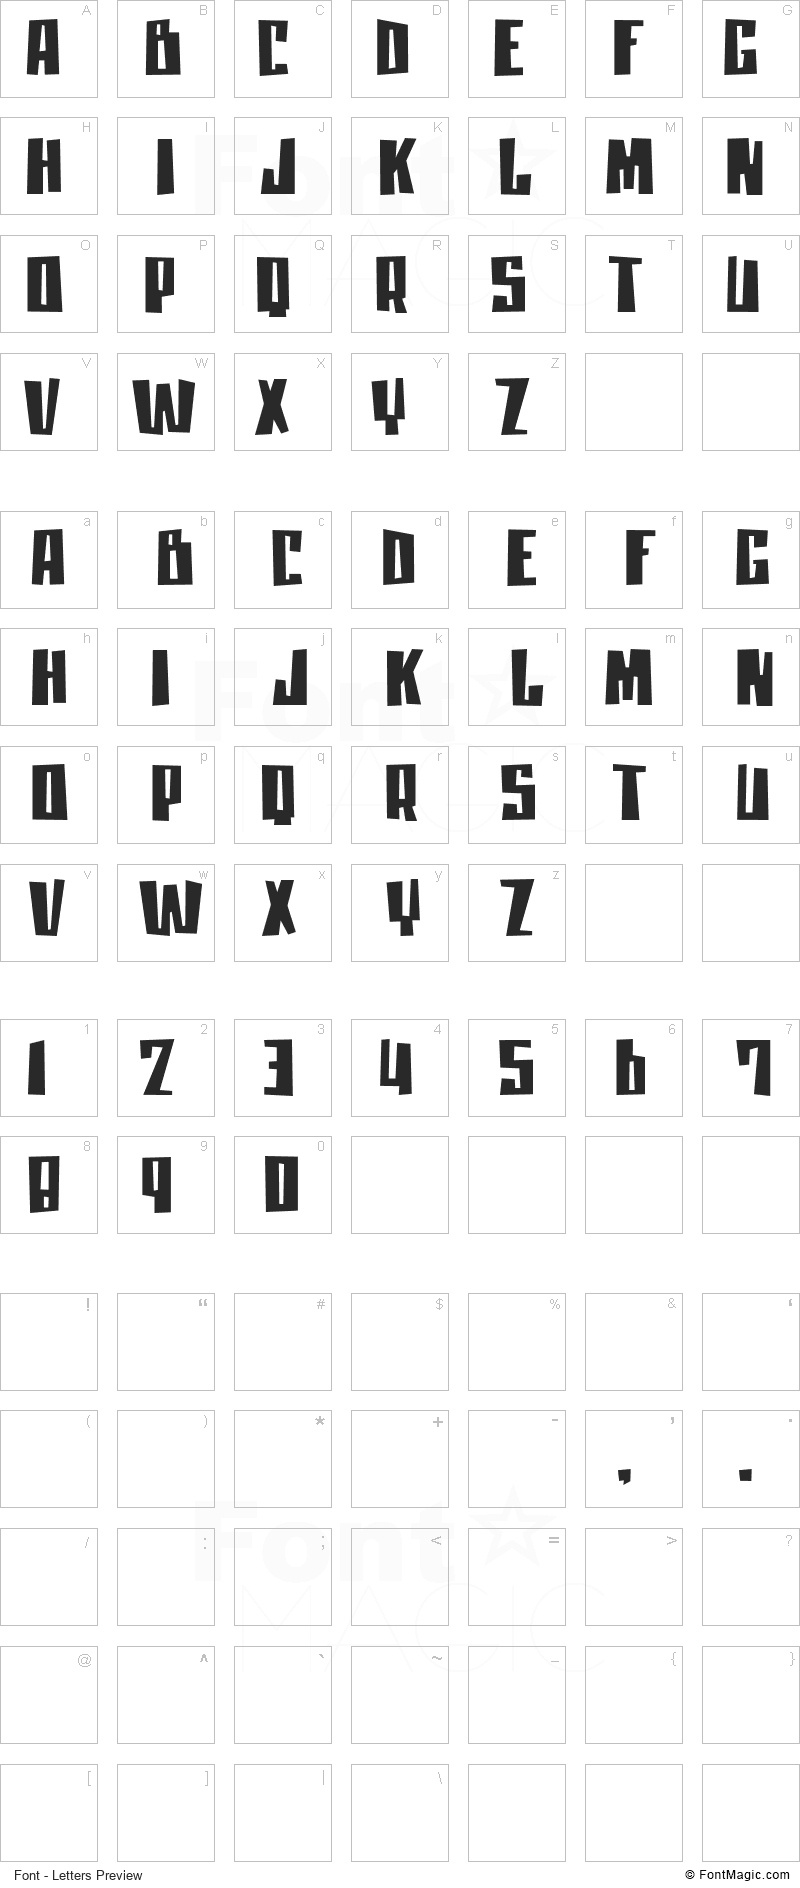 Moan Lisa Font - All Latters Preview Chart